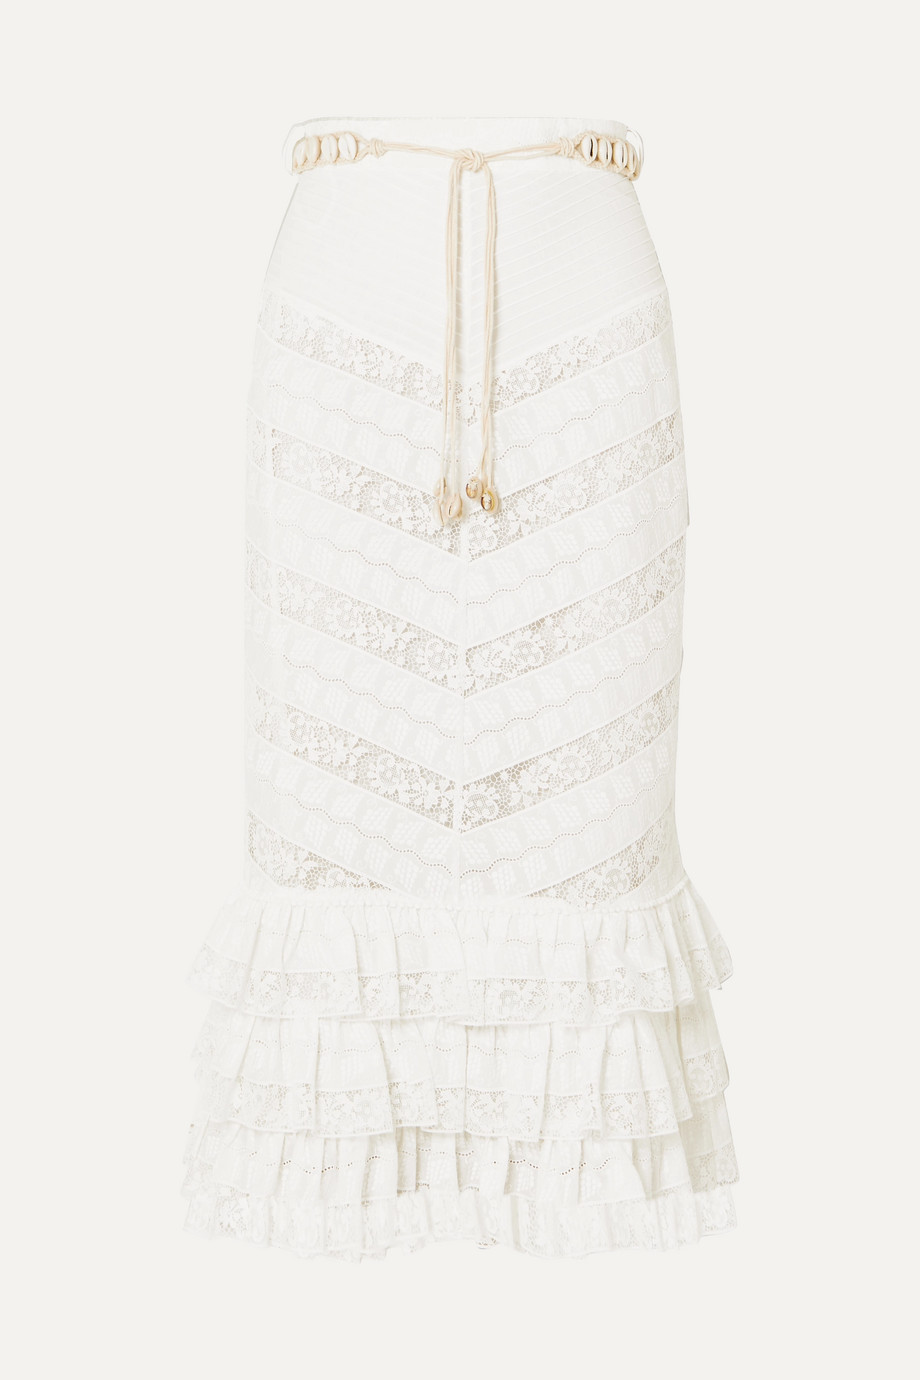 Zimmermann Veneto Perennial ruffled broderie anglaise gauze and lace skirt